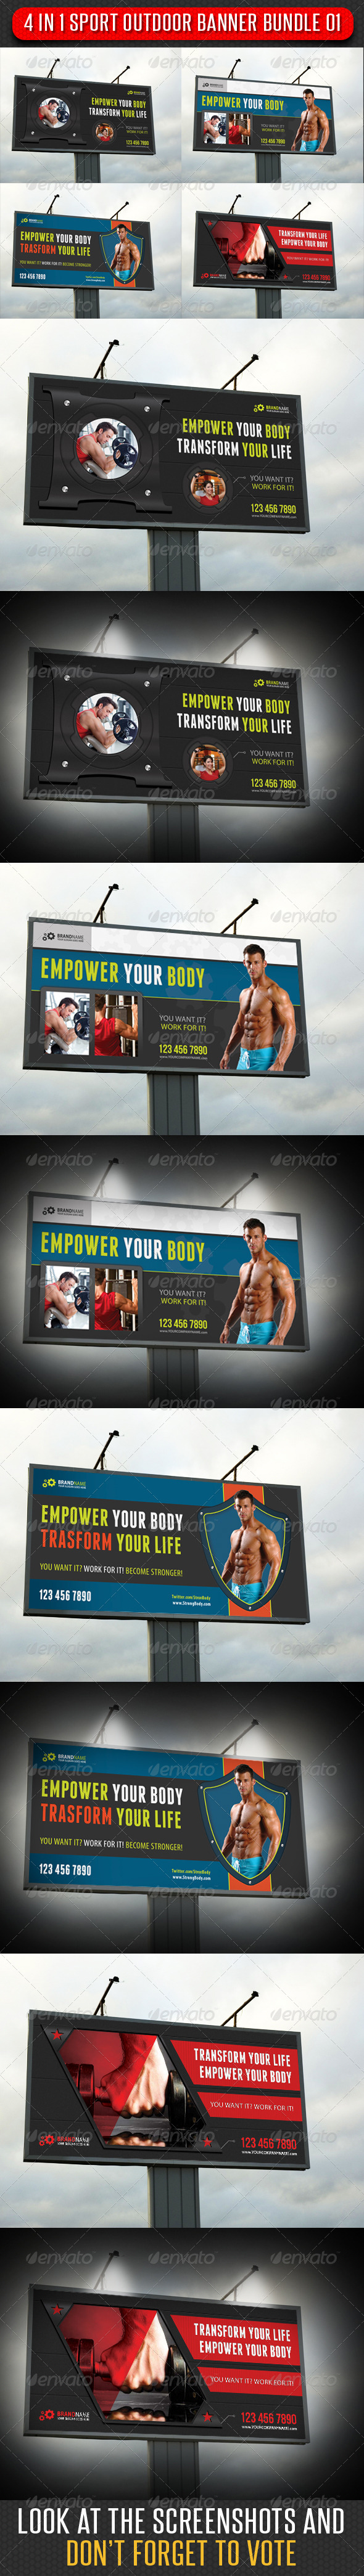 GraphicRiver 4 in 1 Sport Outdoor Banner Bundle 01 6082715